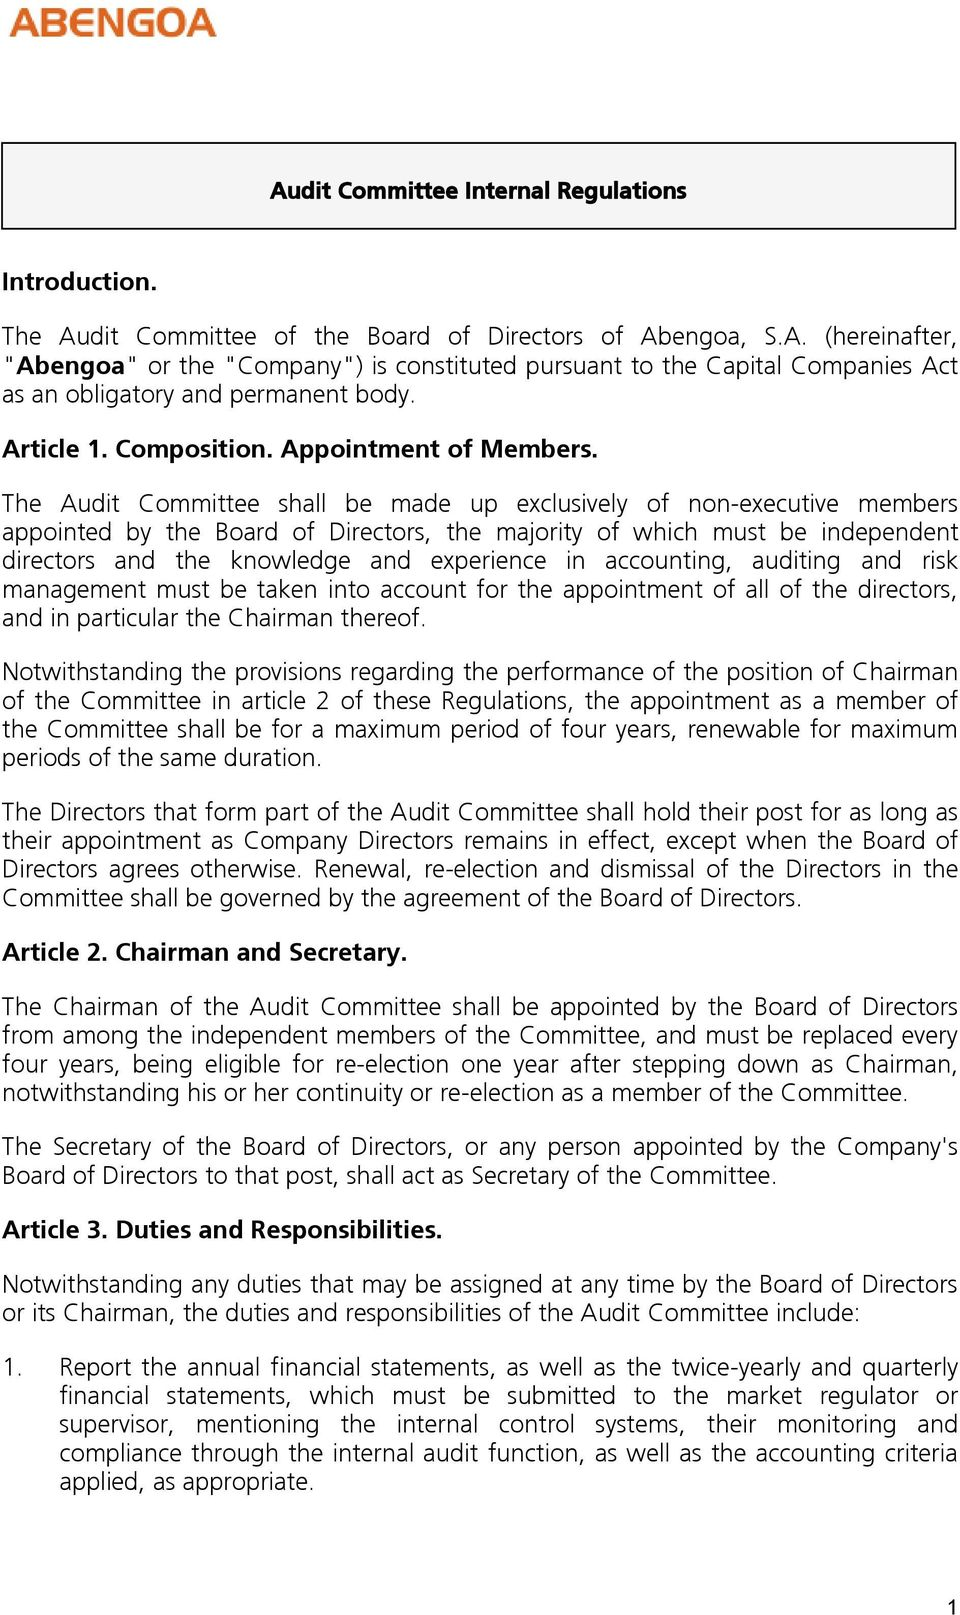 The Audit Committee shall be made up exclusively of non-executive members appointed by the Board of Directors, the majority of which must be independent directors and the knowledge and experience in